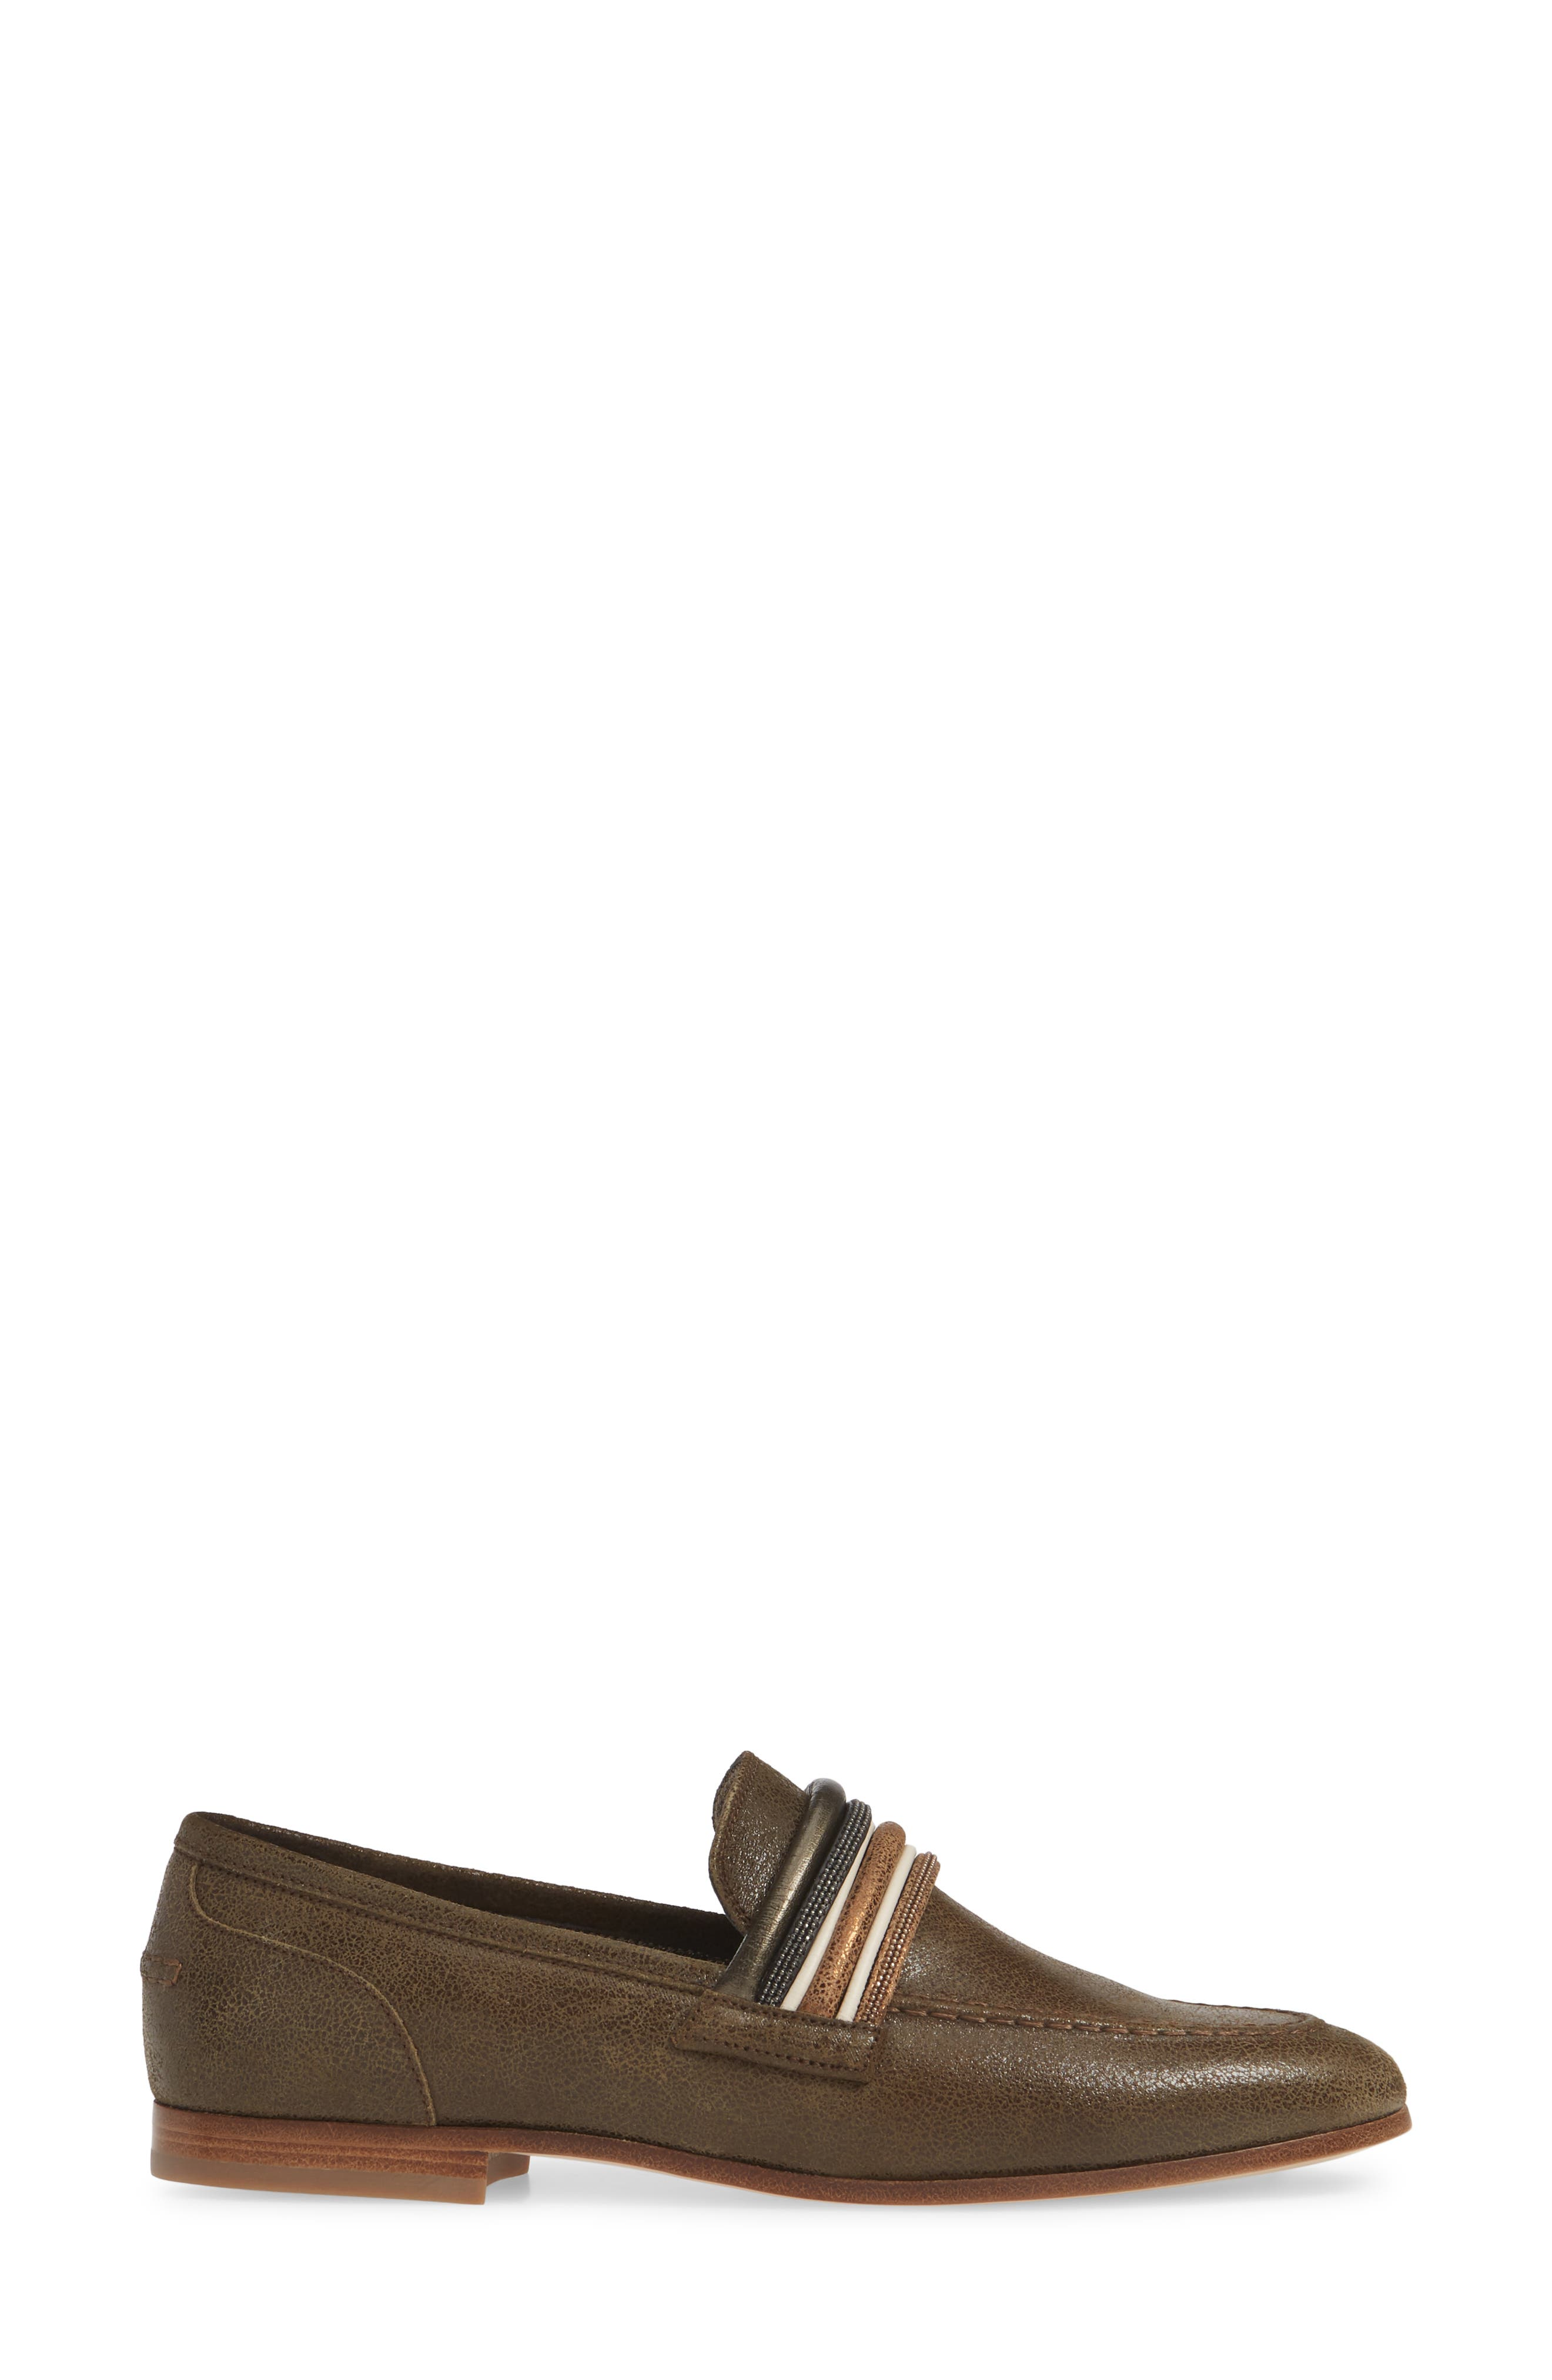 Tubular Loafer,                             Alternate thumbnail 3, color,                             MUD BROWN